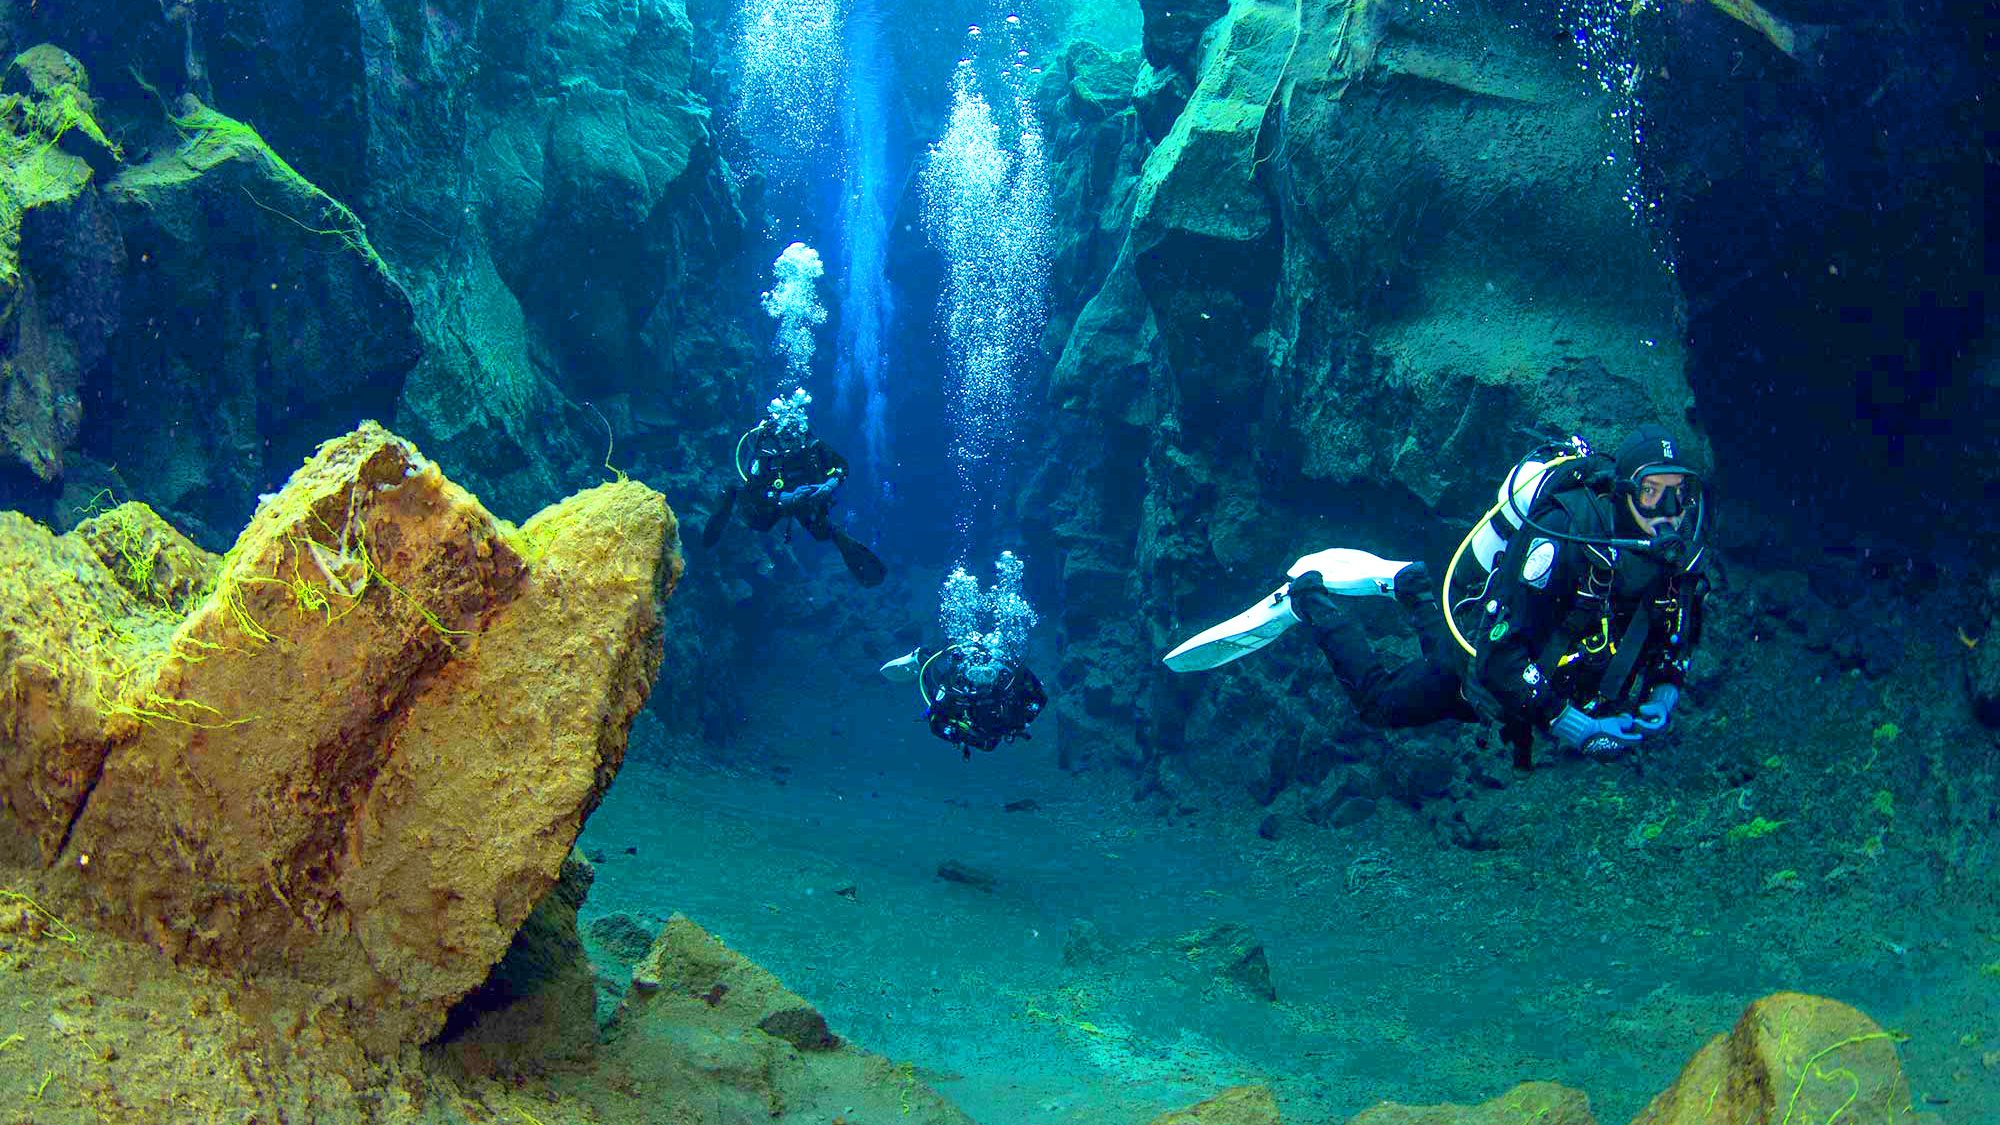 Scuba diving group in Arctic waters